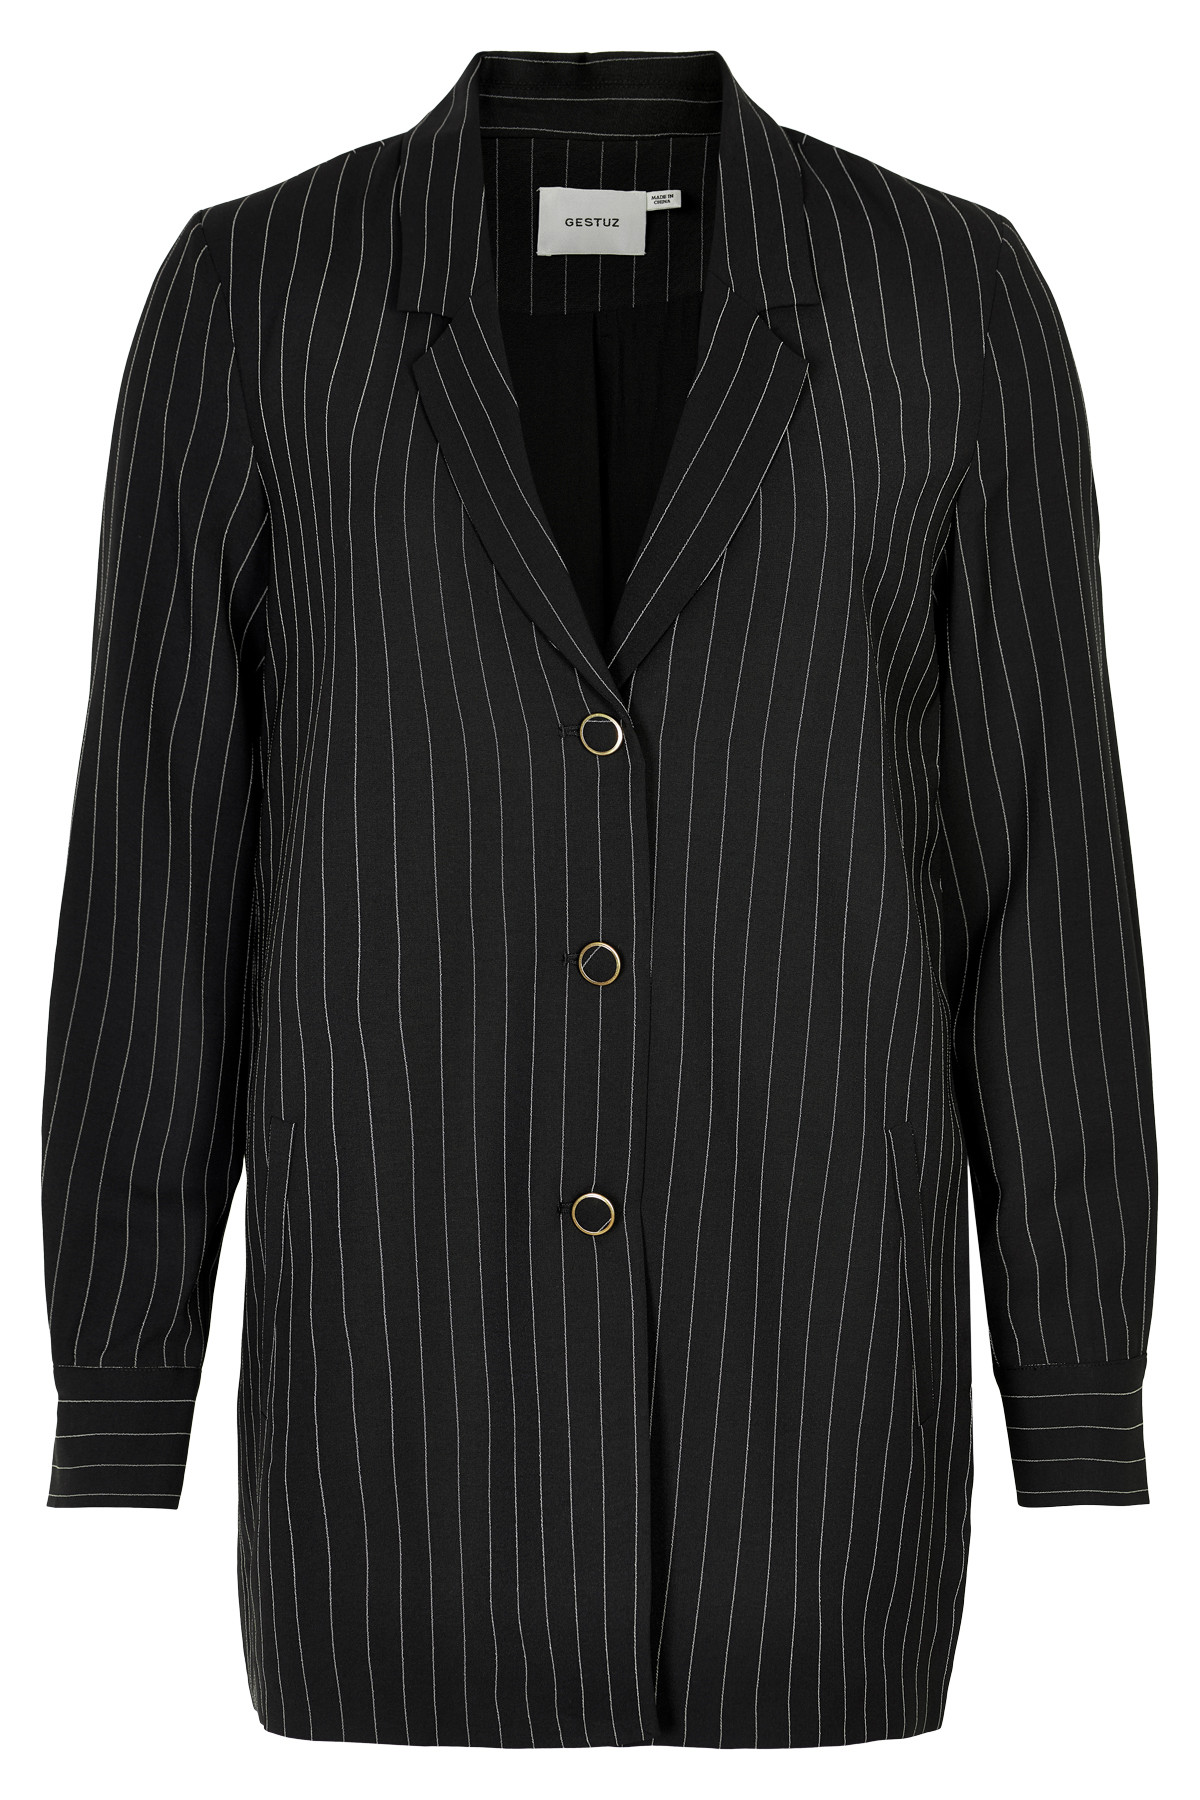 Image of   GESTUZ TARA BLAZER B (Black W. White Stripes 90136, 40)